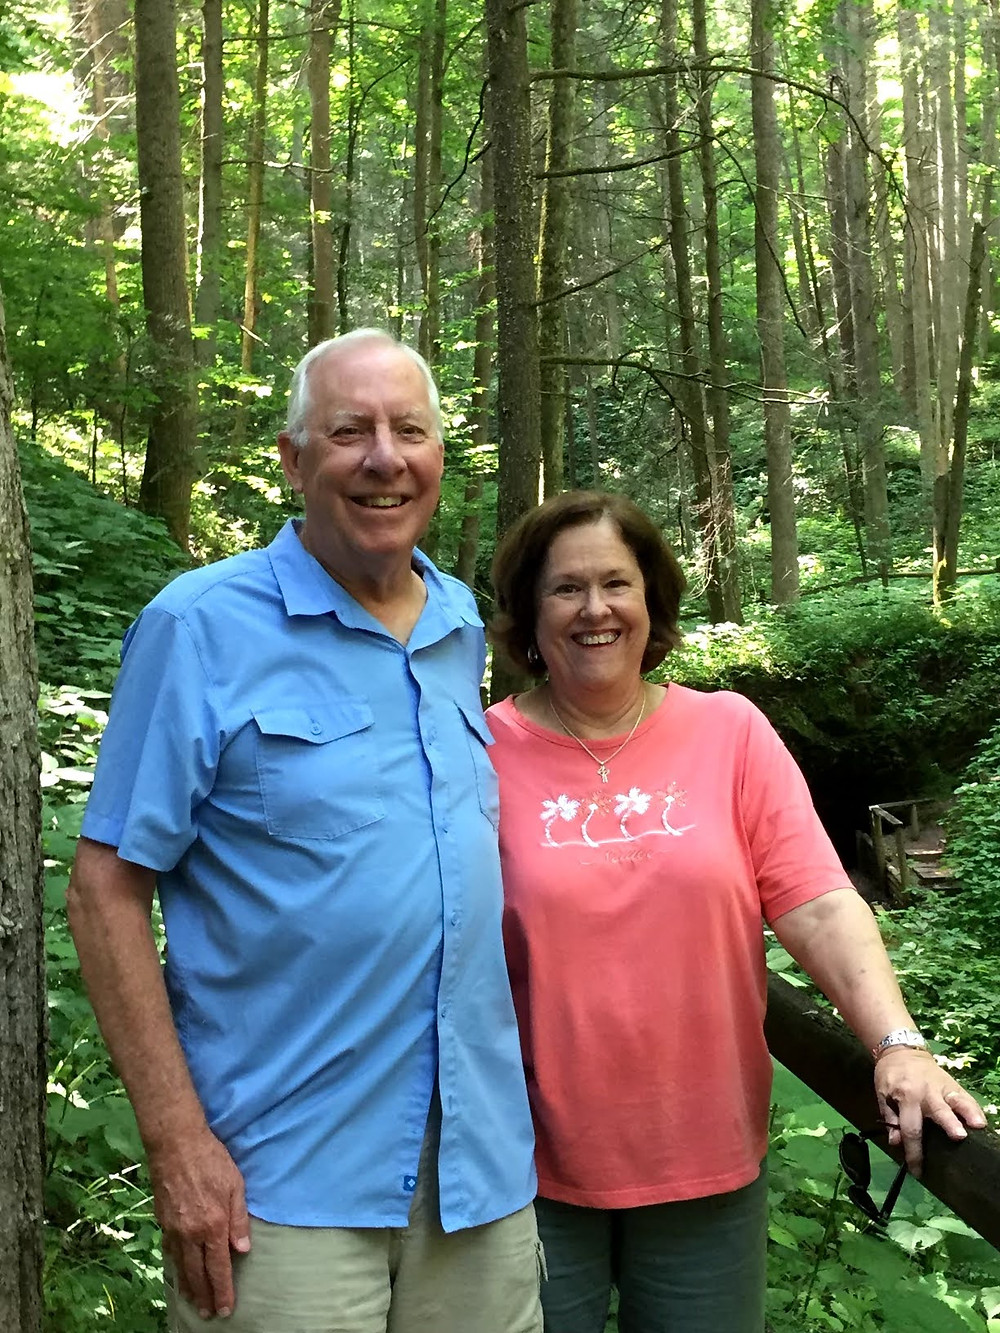 Jim and Mary Davis in the woods at Roan Mountain State Park.